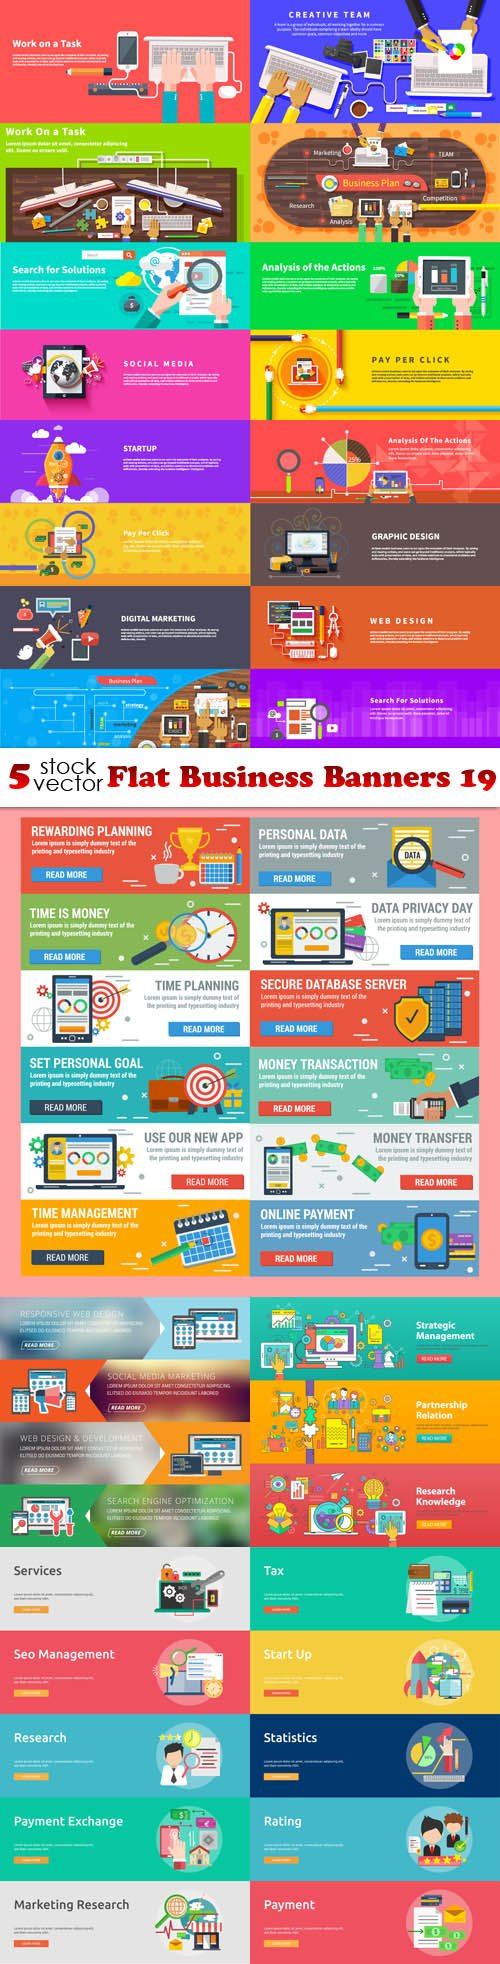 Vectors - Flat Business Banners 19